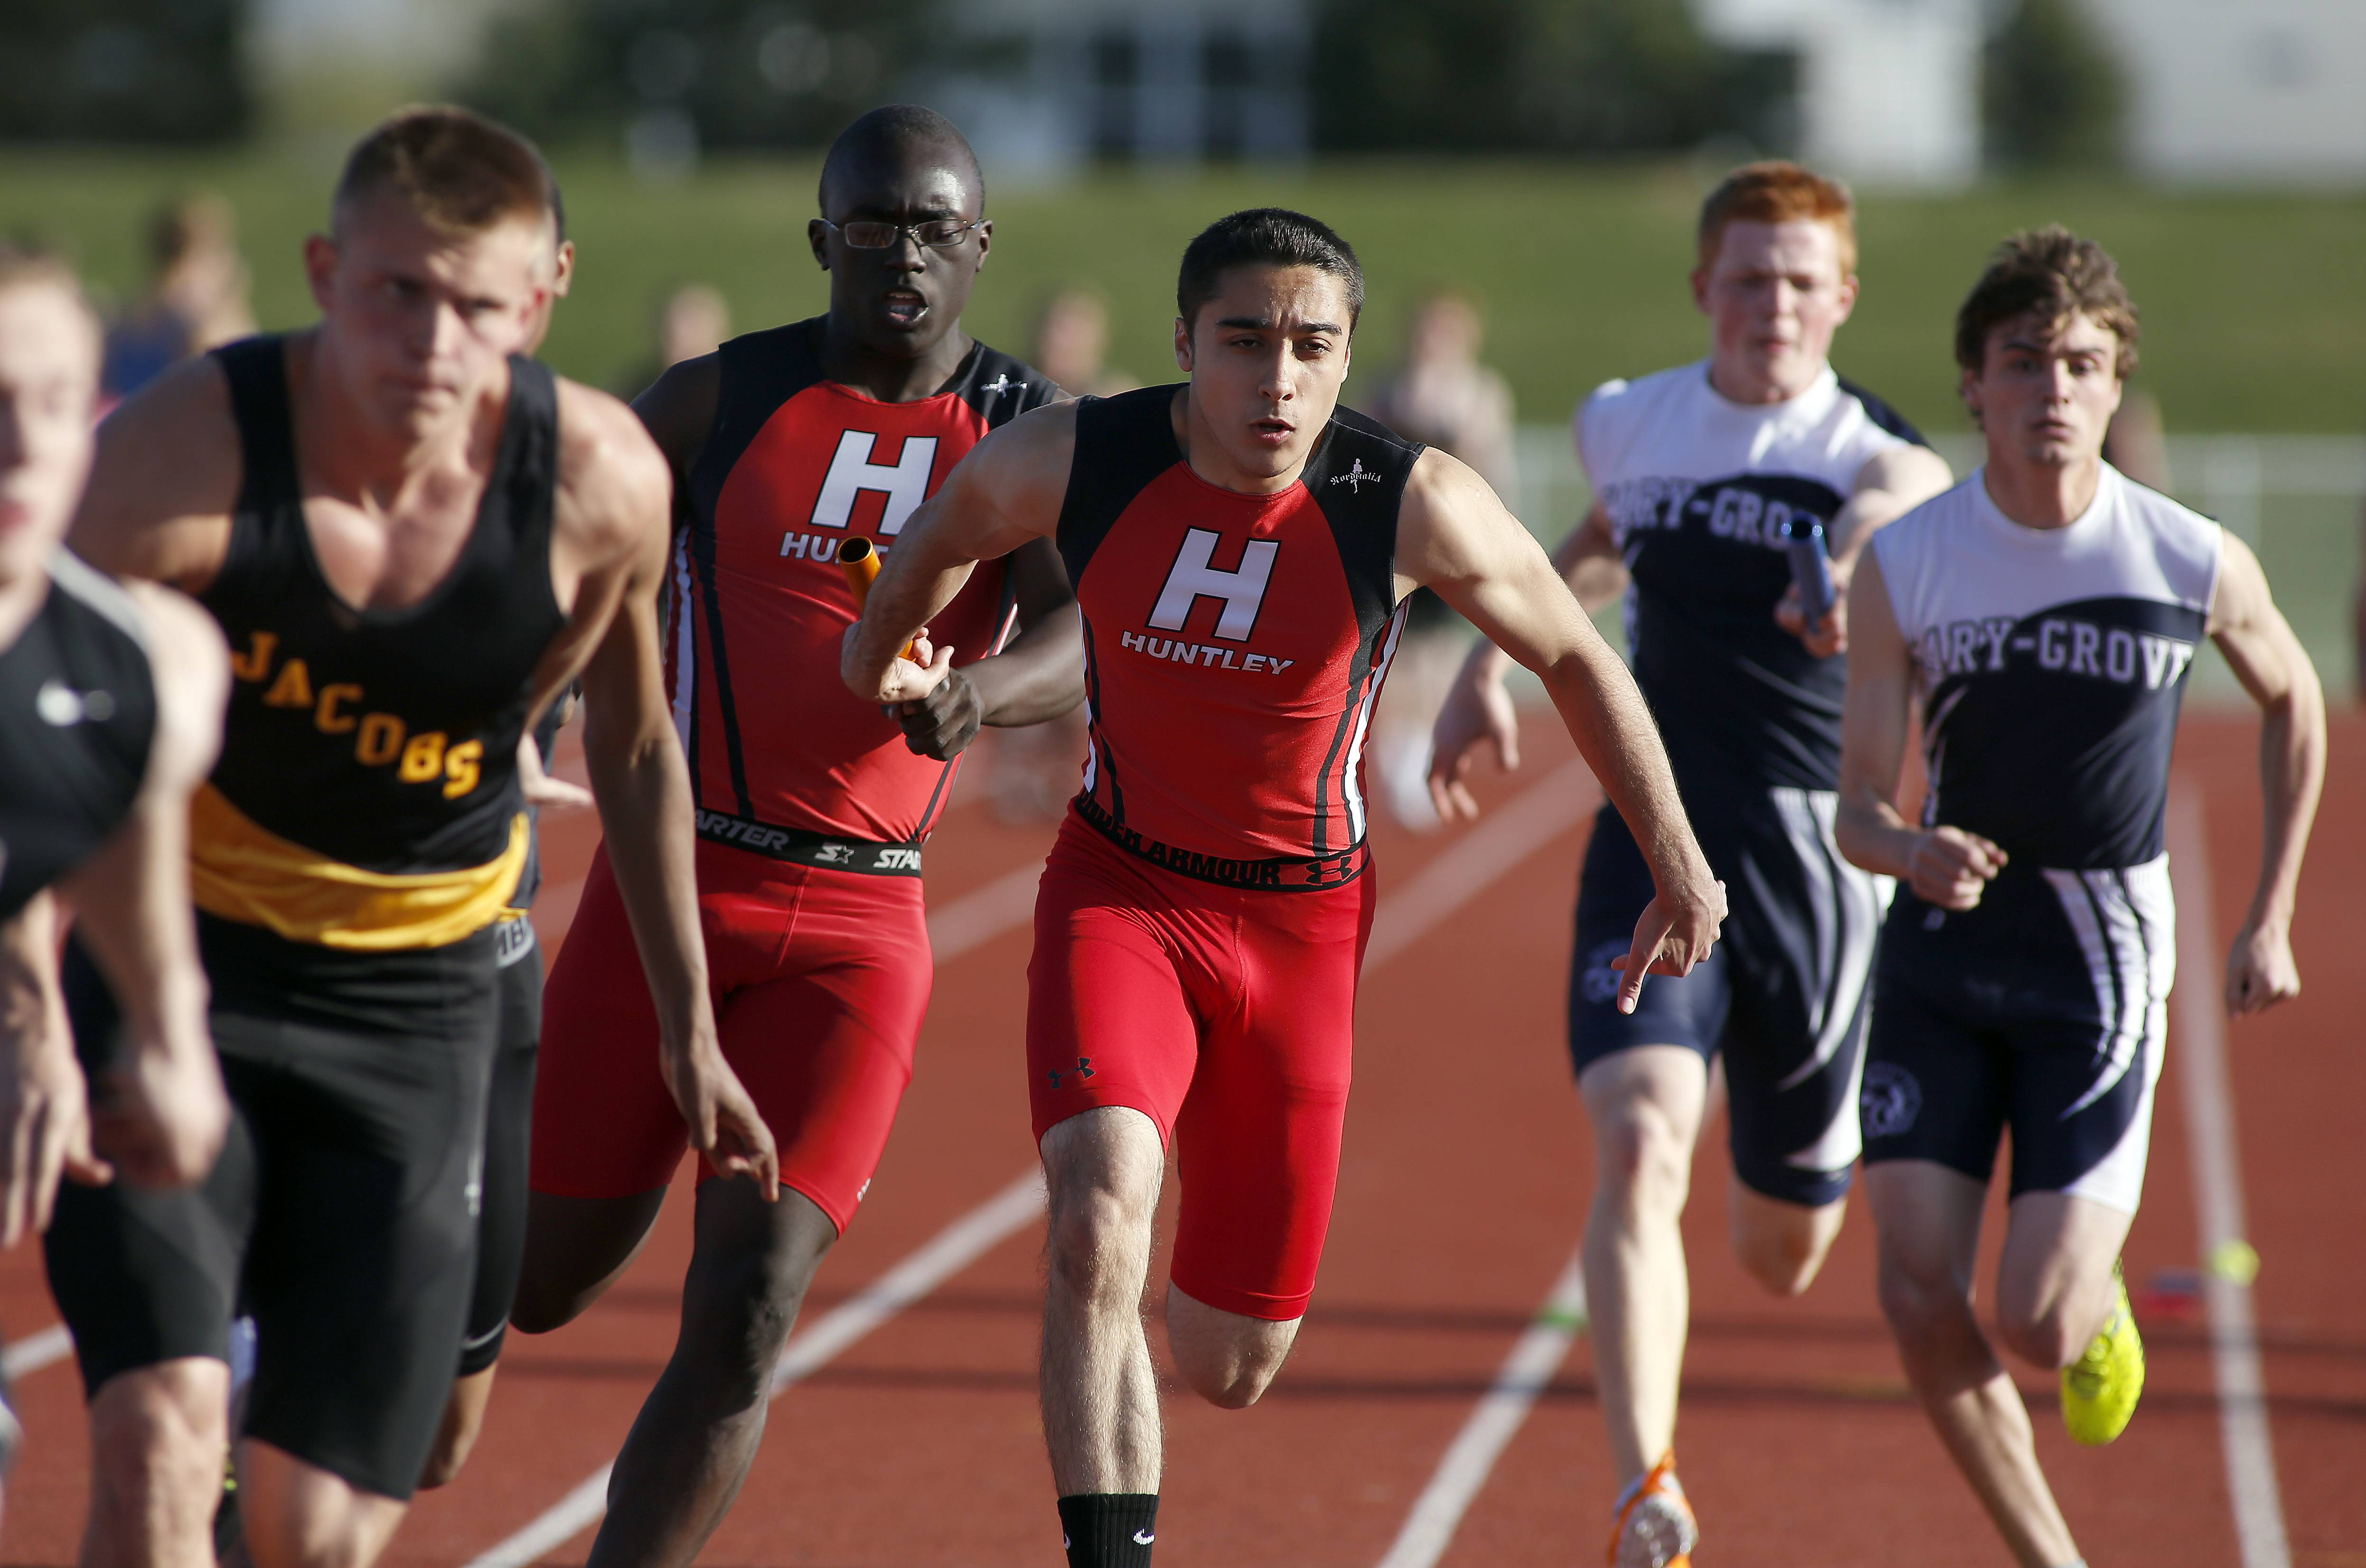 Huntley's Tim McCloyn, left and Aasem Awwad hand off the baton in the 4x100 relay during the McHenry County Track and Field Championships Friday in Huntley.